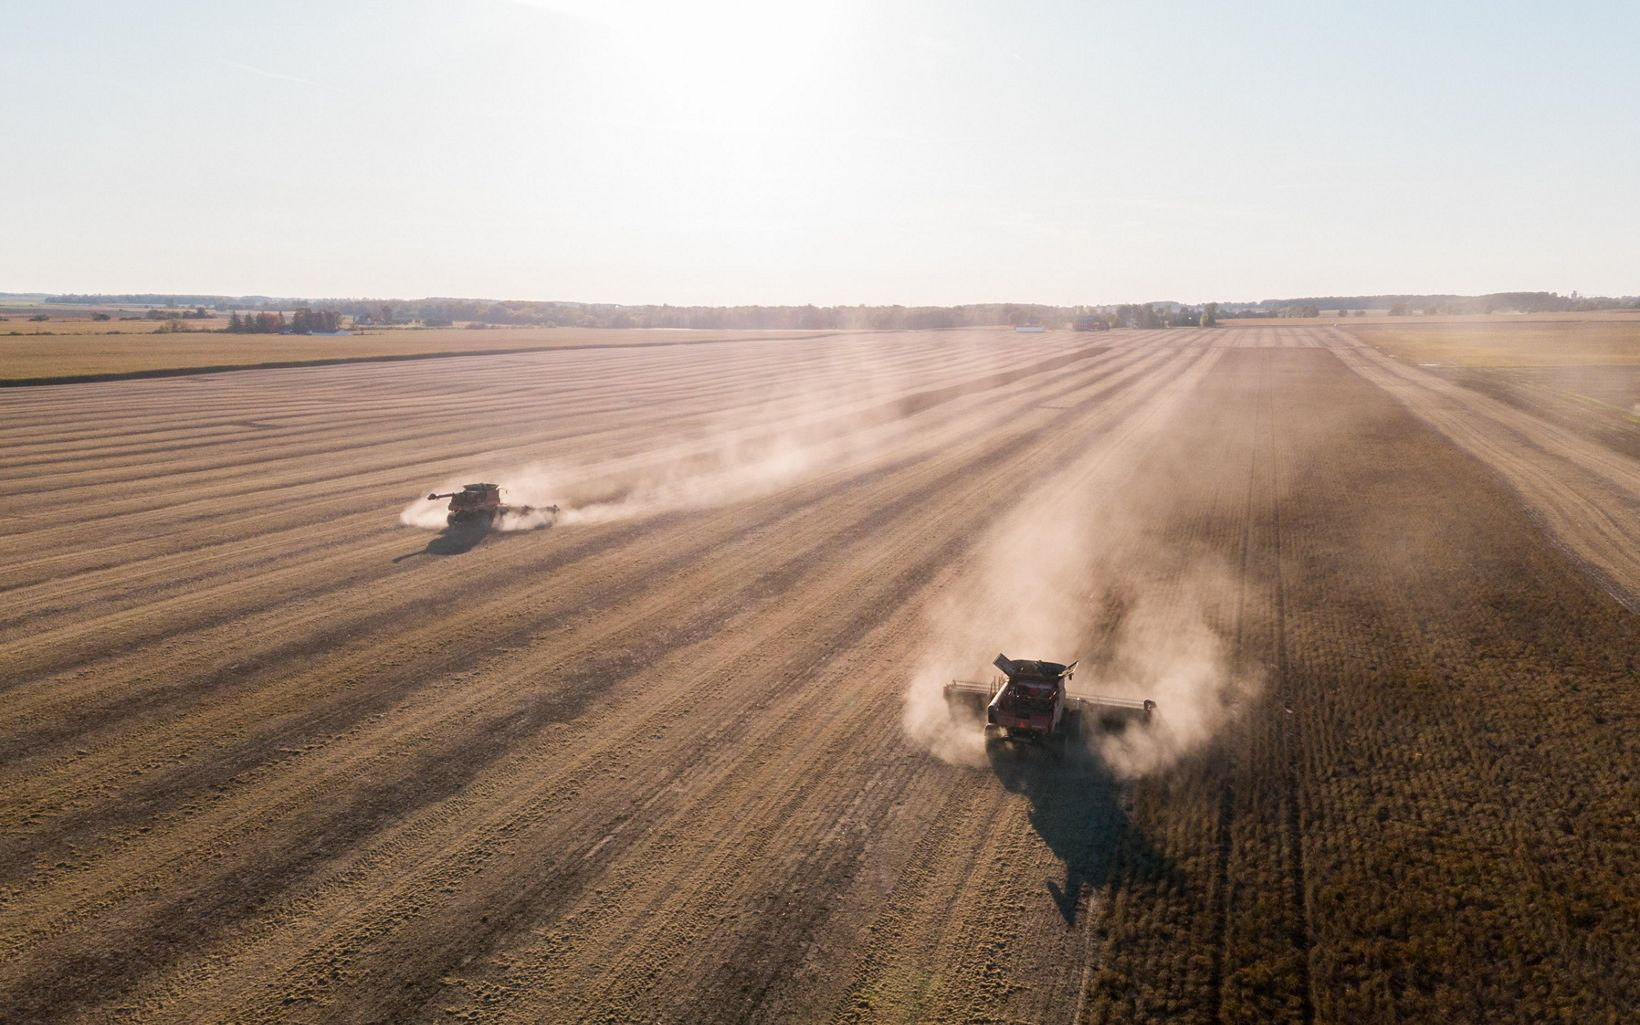 Aerial photo of two tractors moving through a field.